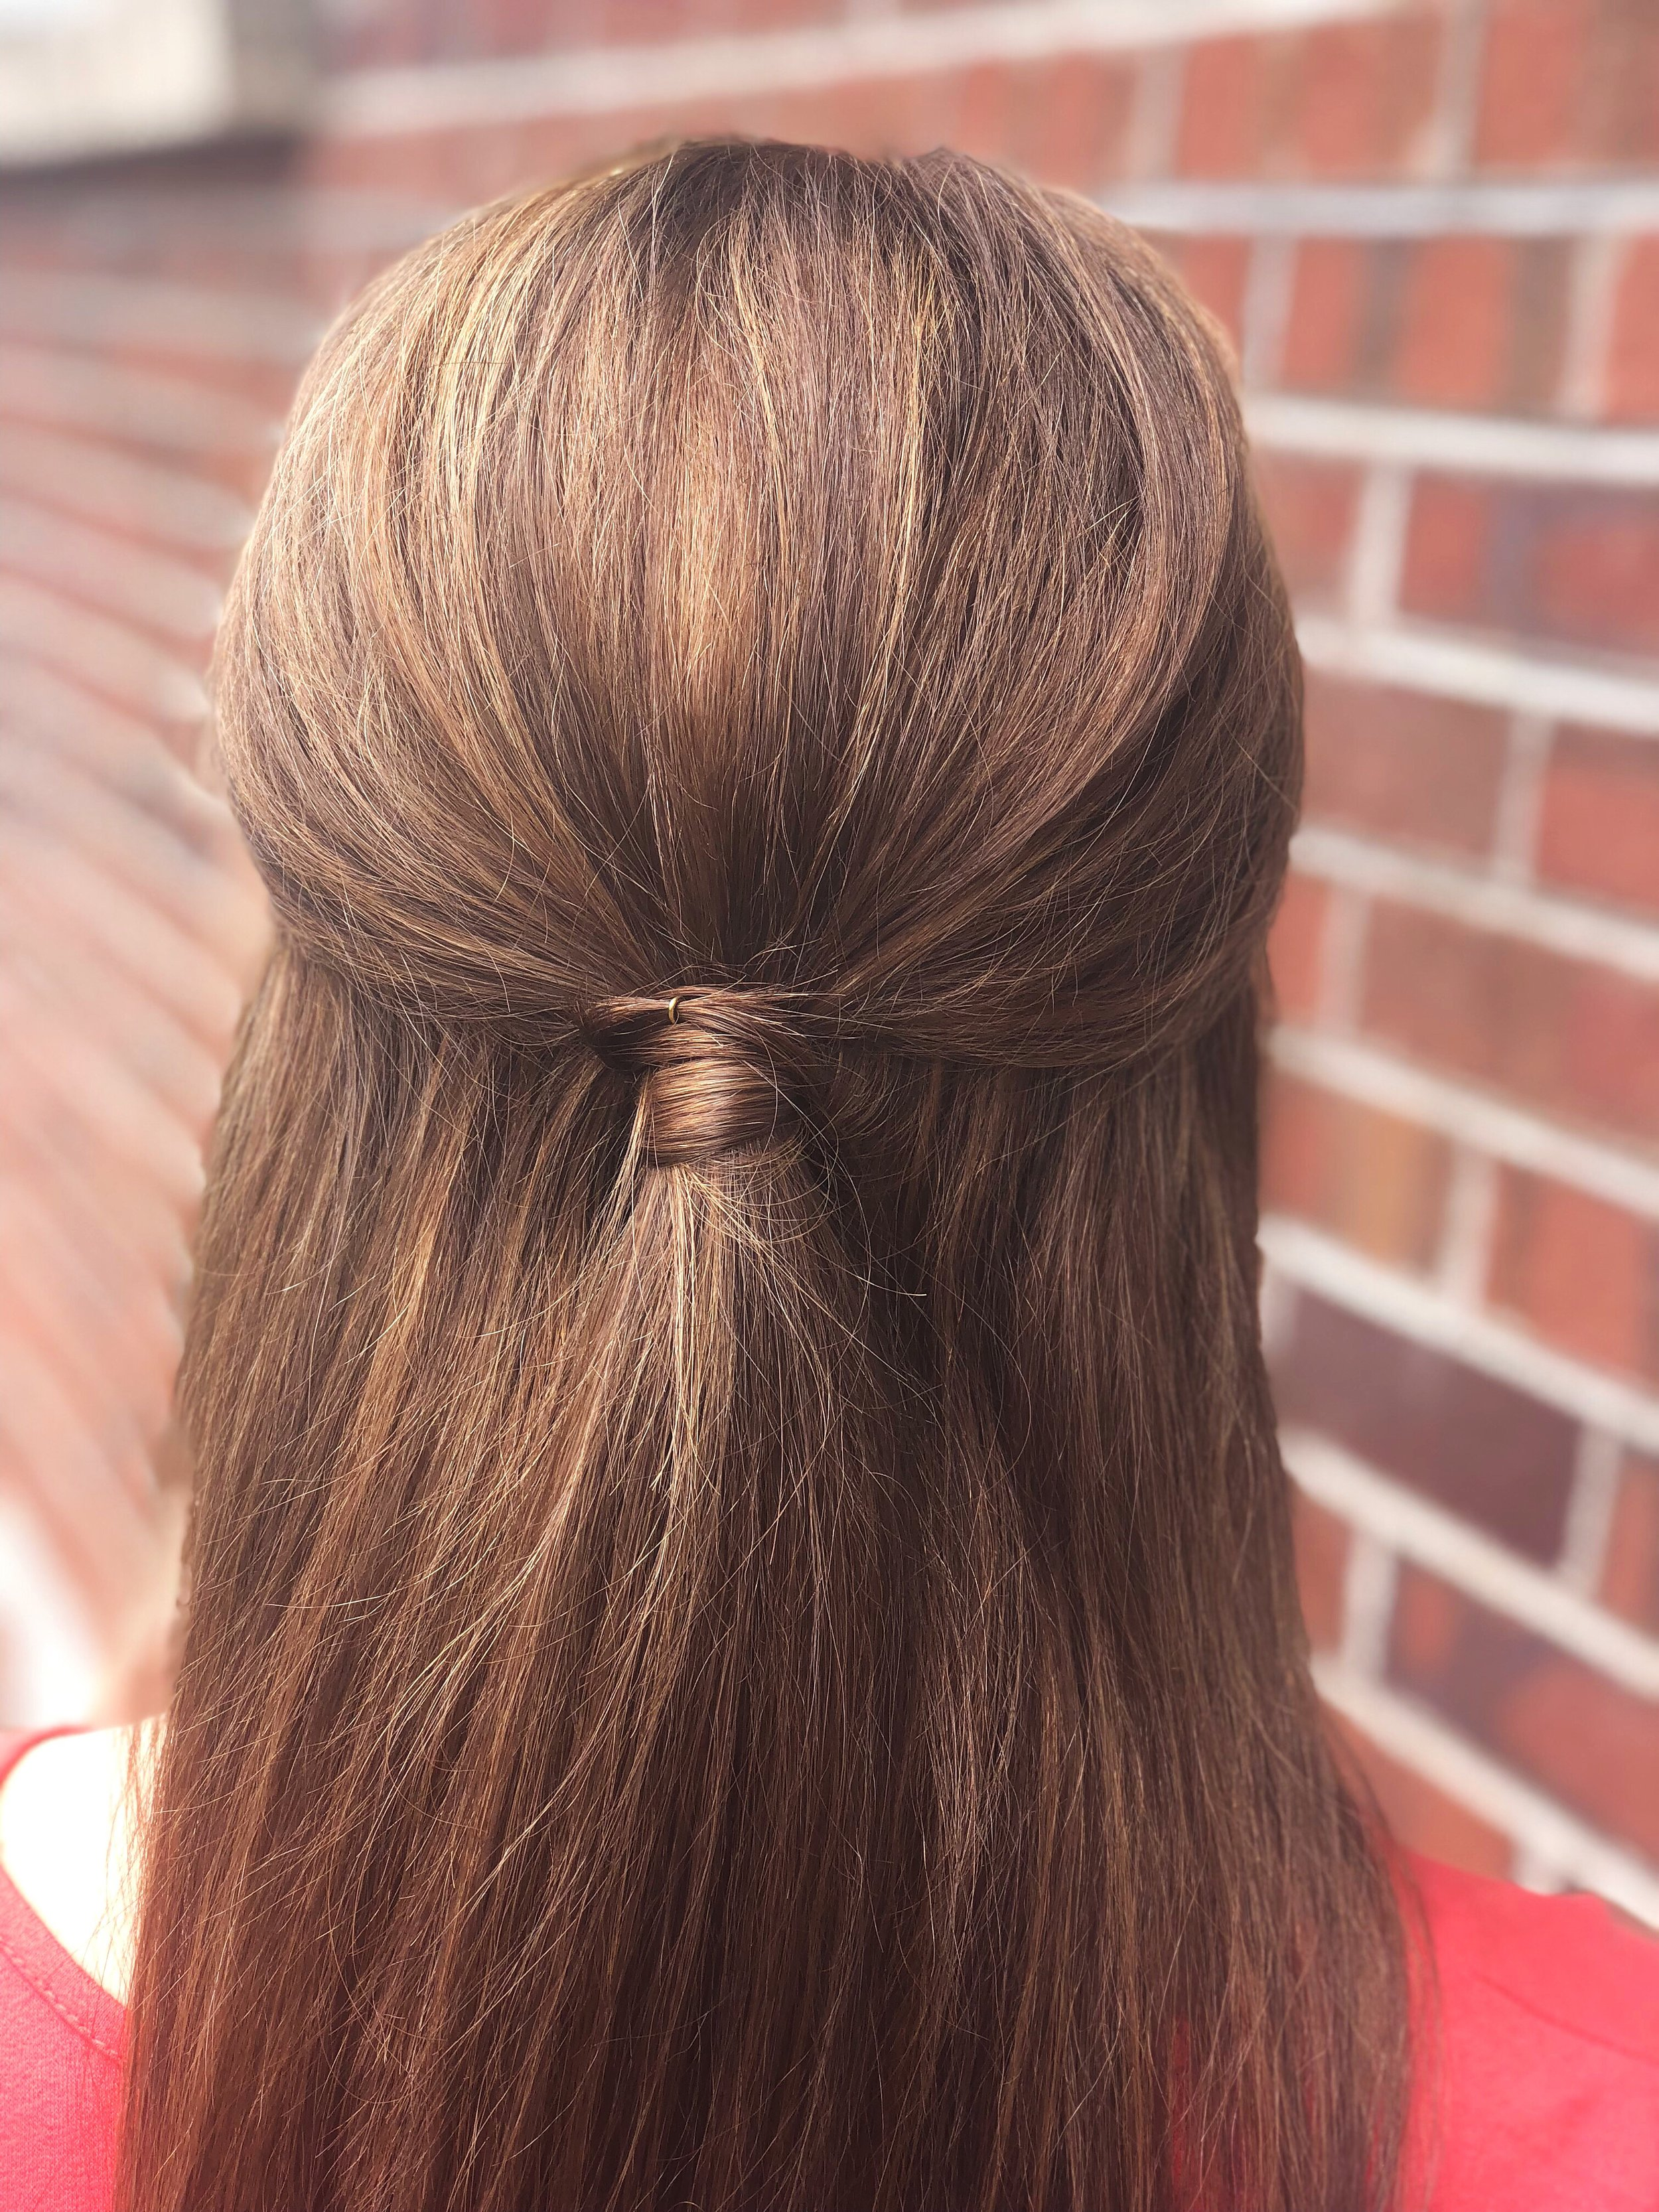 QUICK AND EASY HAIR STYLE TUTORIALS